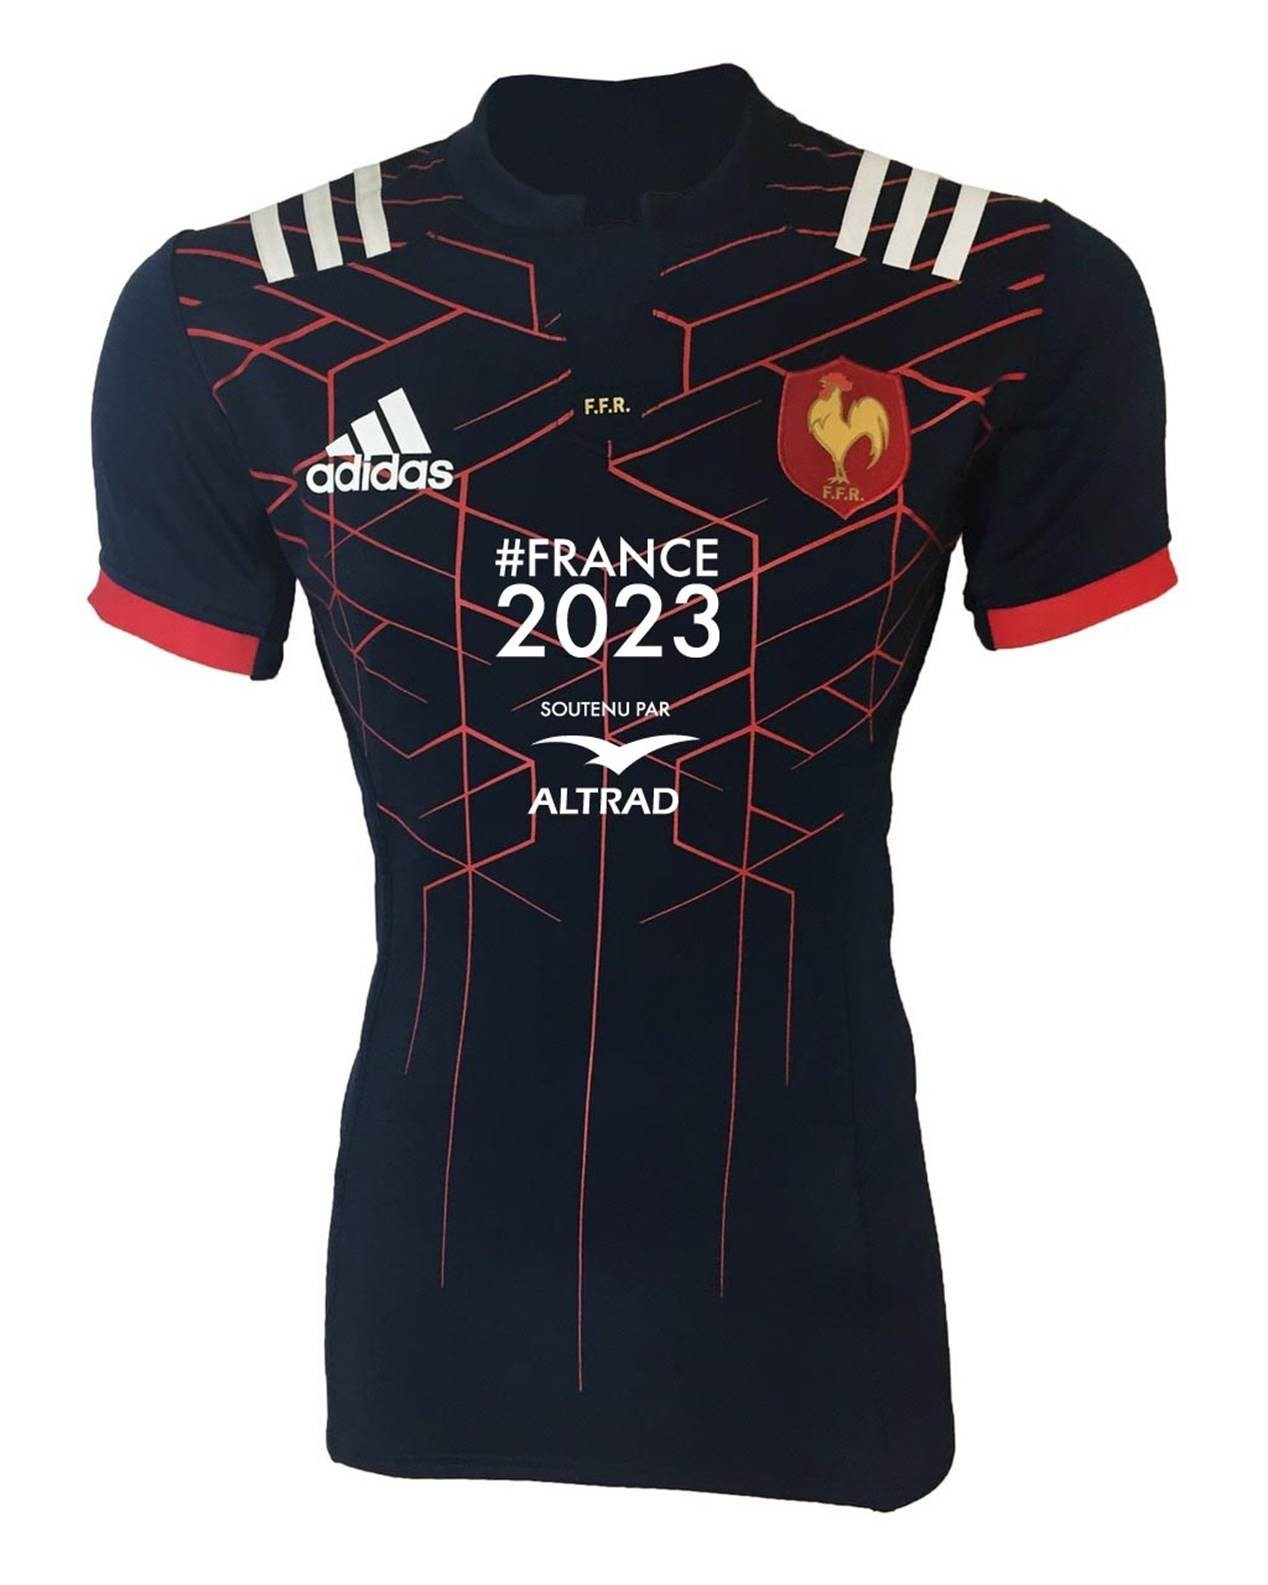 xv de france le nouveau maillot des bleus avec le logo altrad 6 nations 2017 rugby rugbyrama. Black Bedroom Furniture Sets. Home Design Ideas